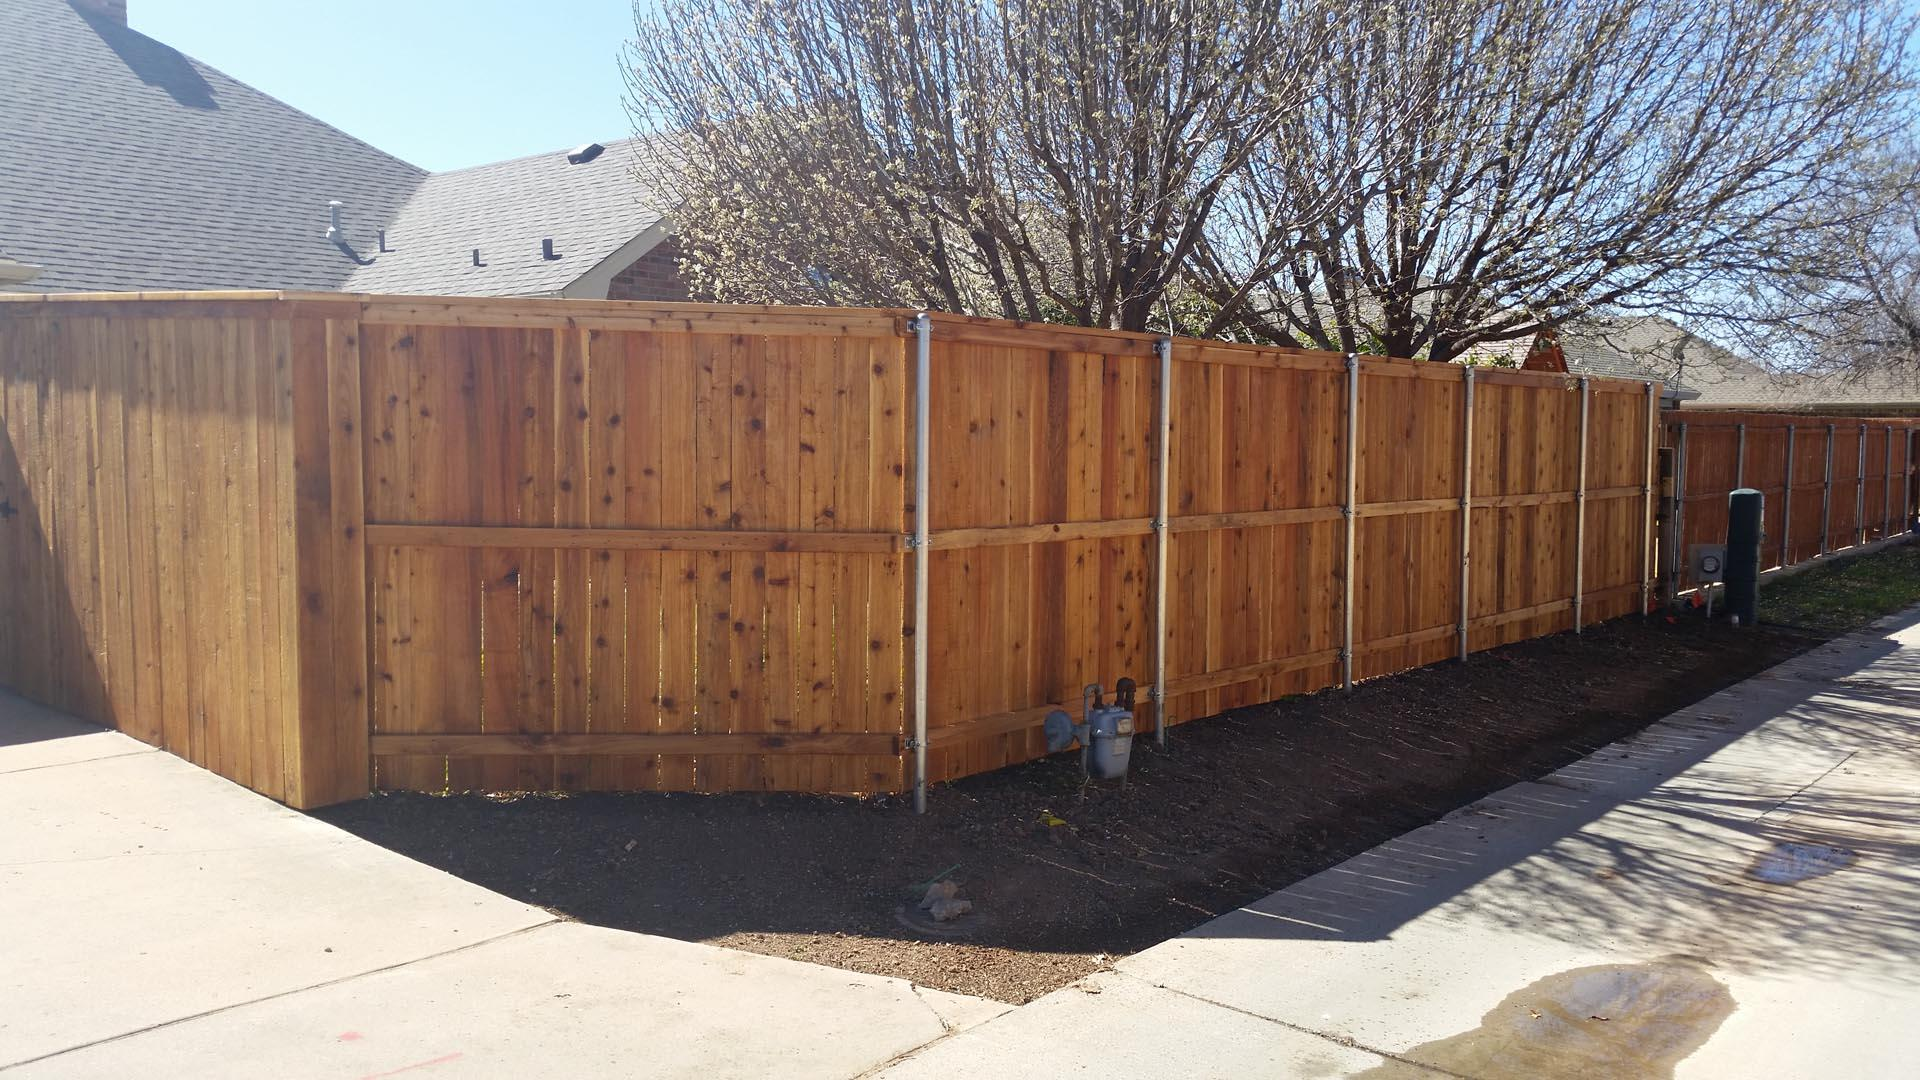 Best Value Fencing And Home Services image 6